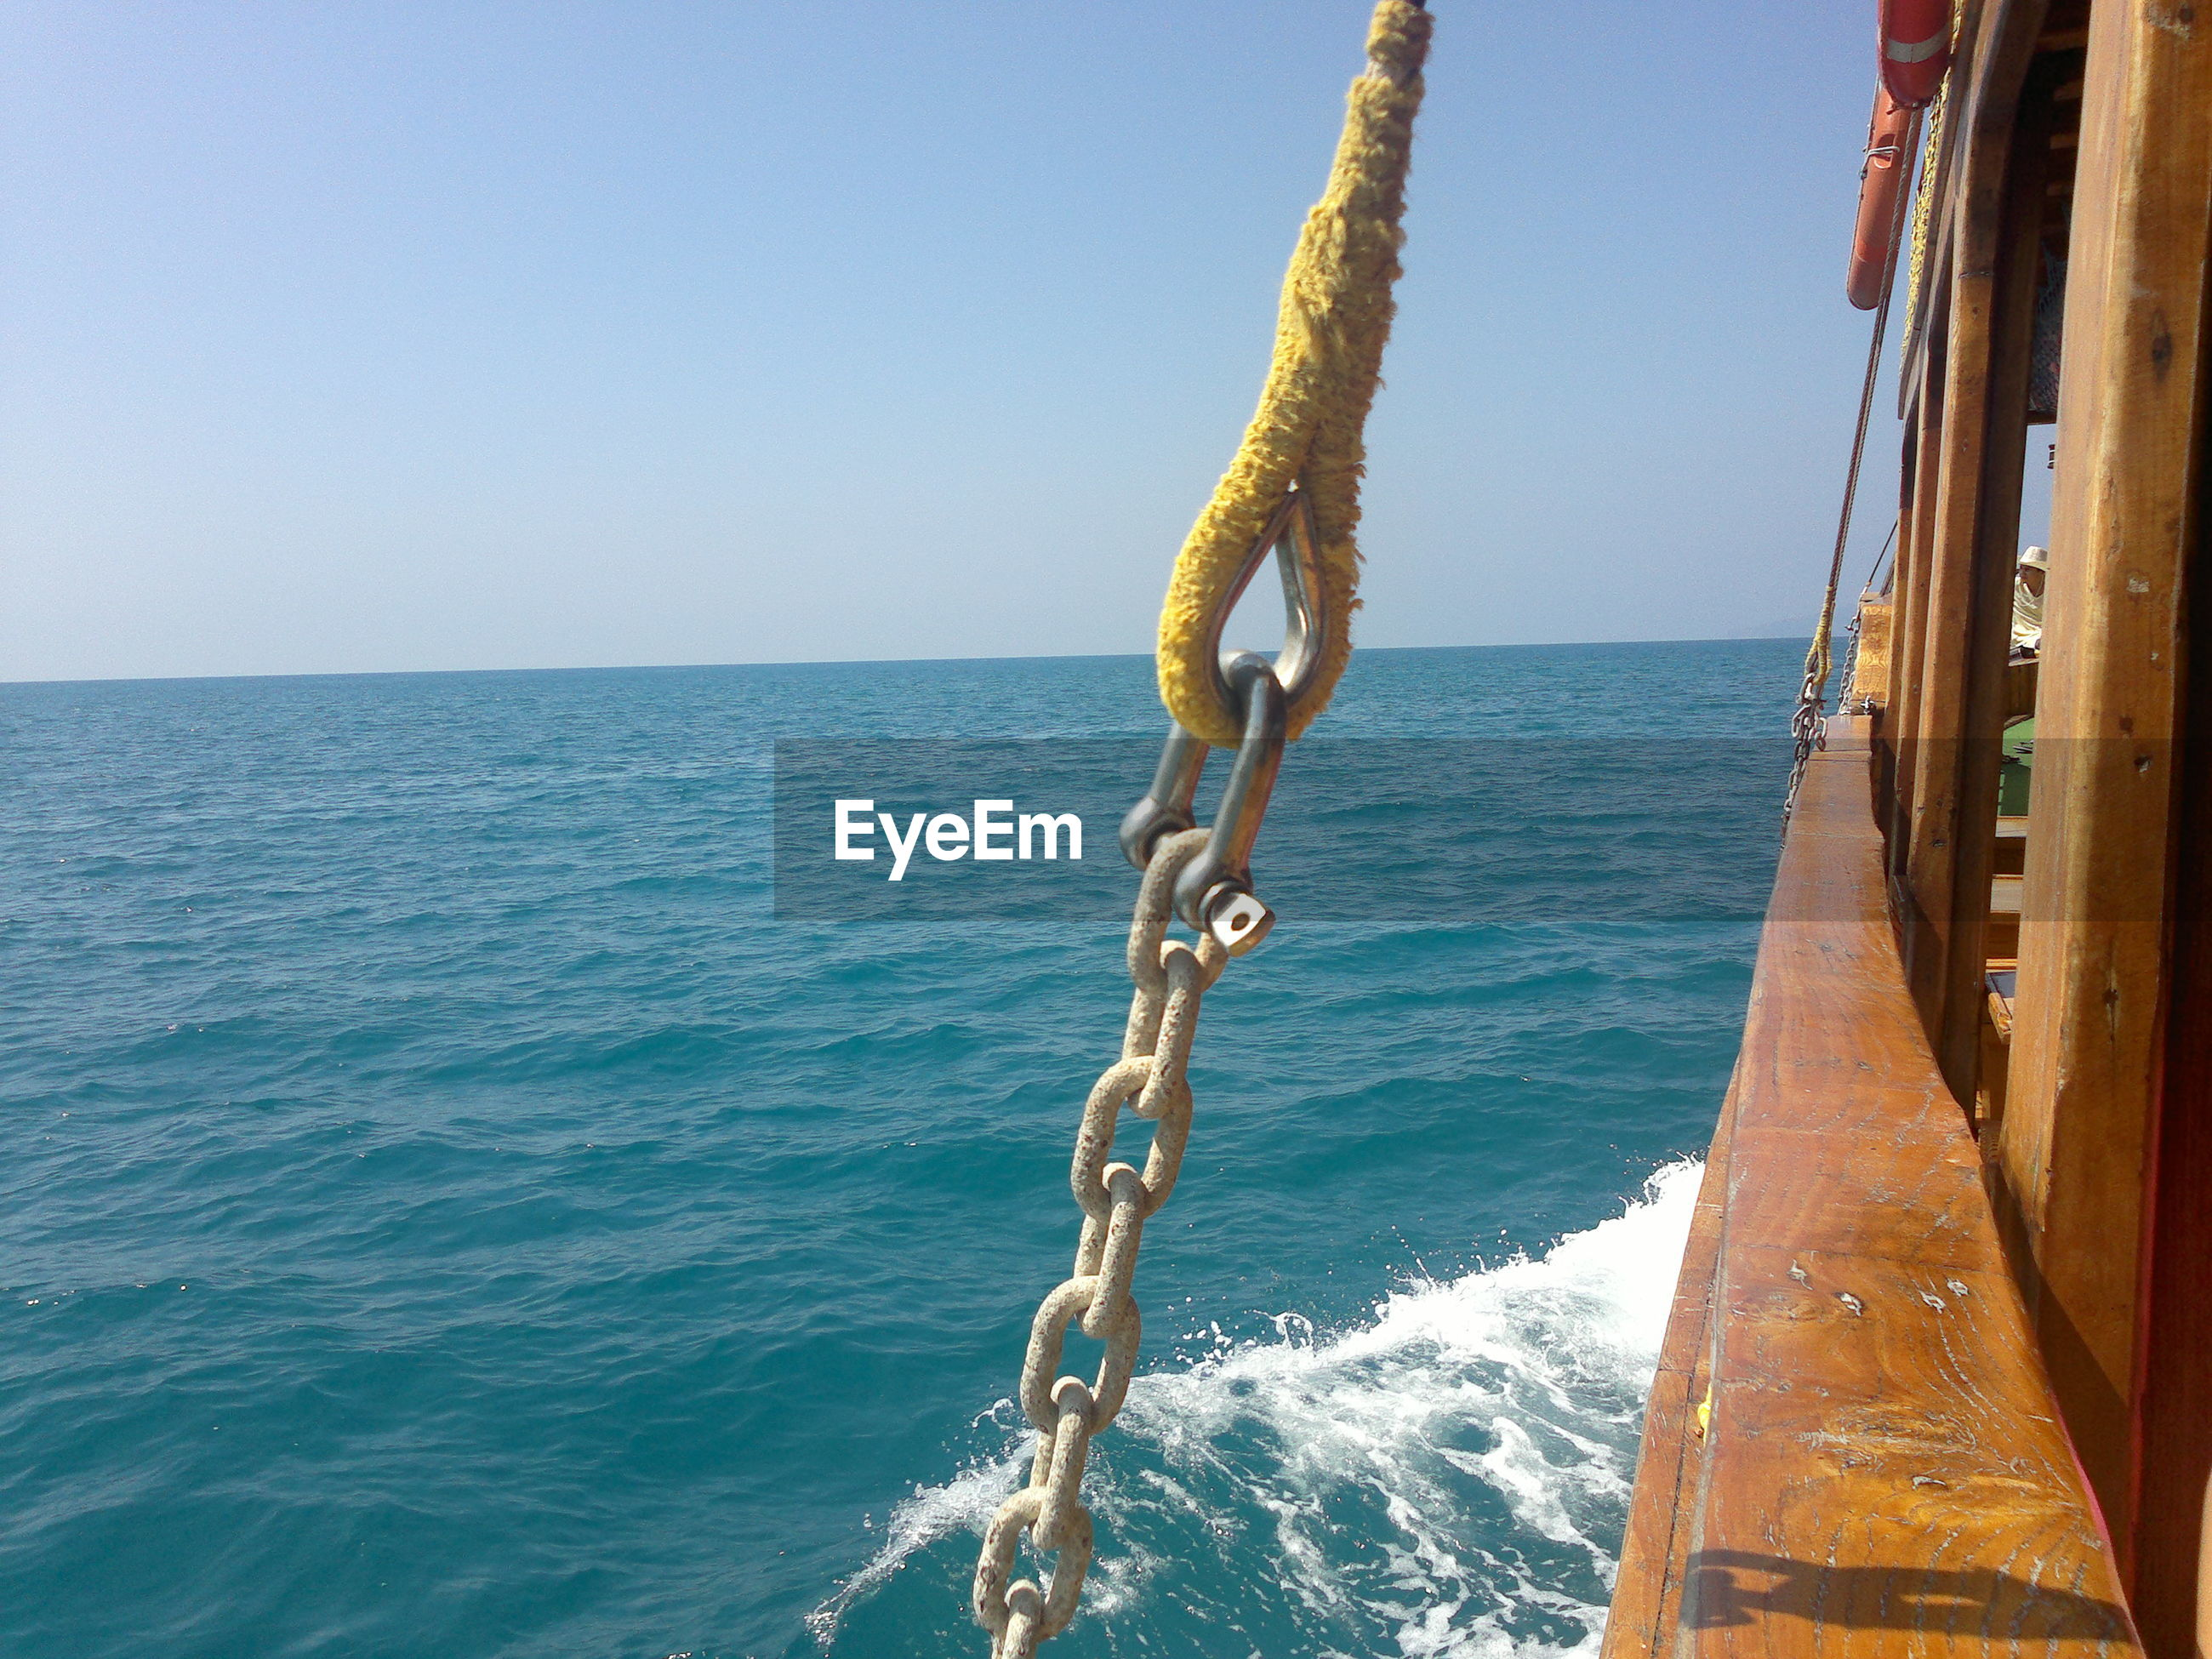 Chain hanging on boat over sea against clear sky